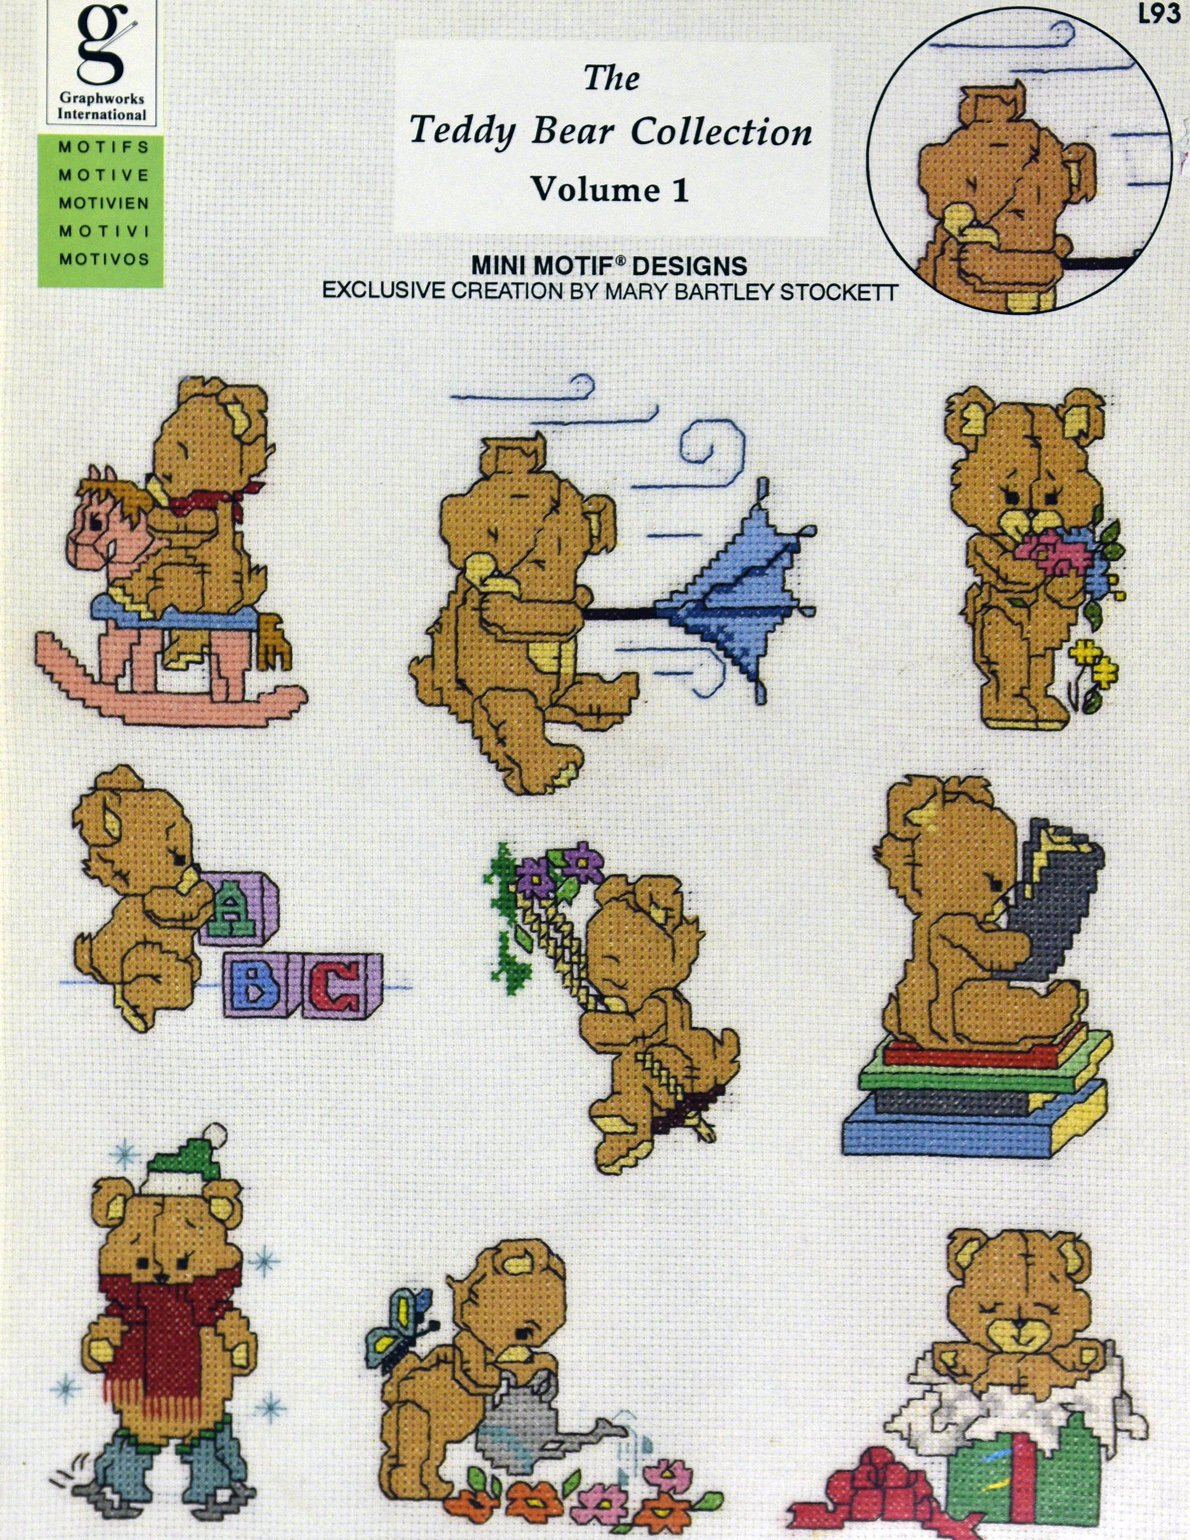 The Teddy Bear Collection Volume I